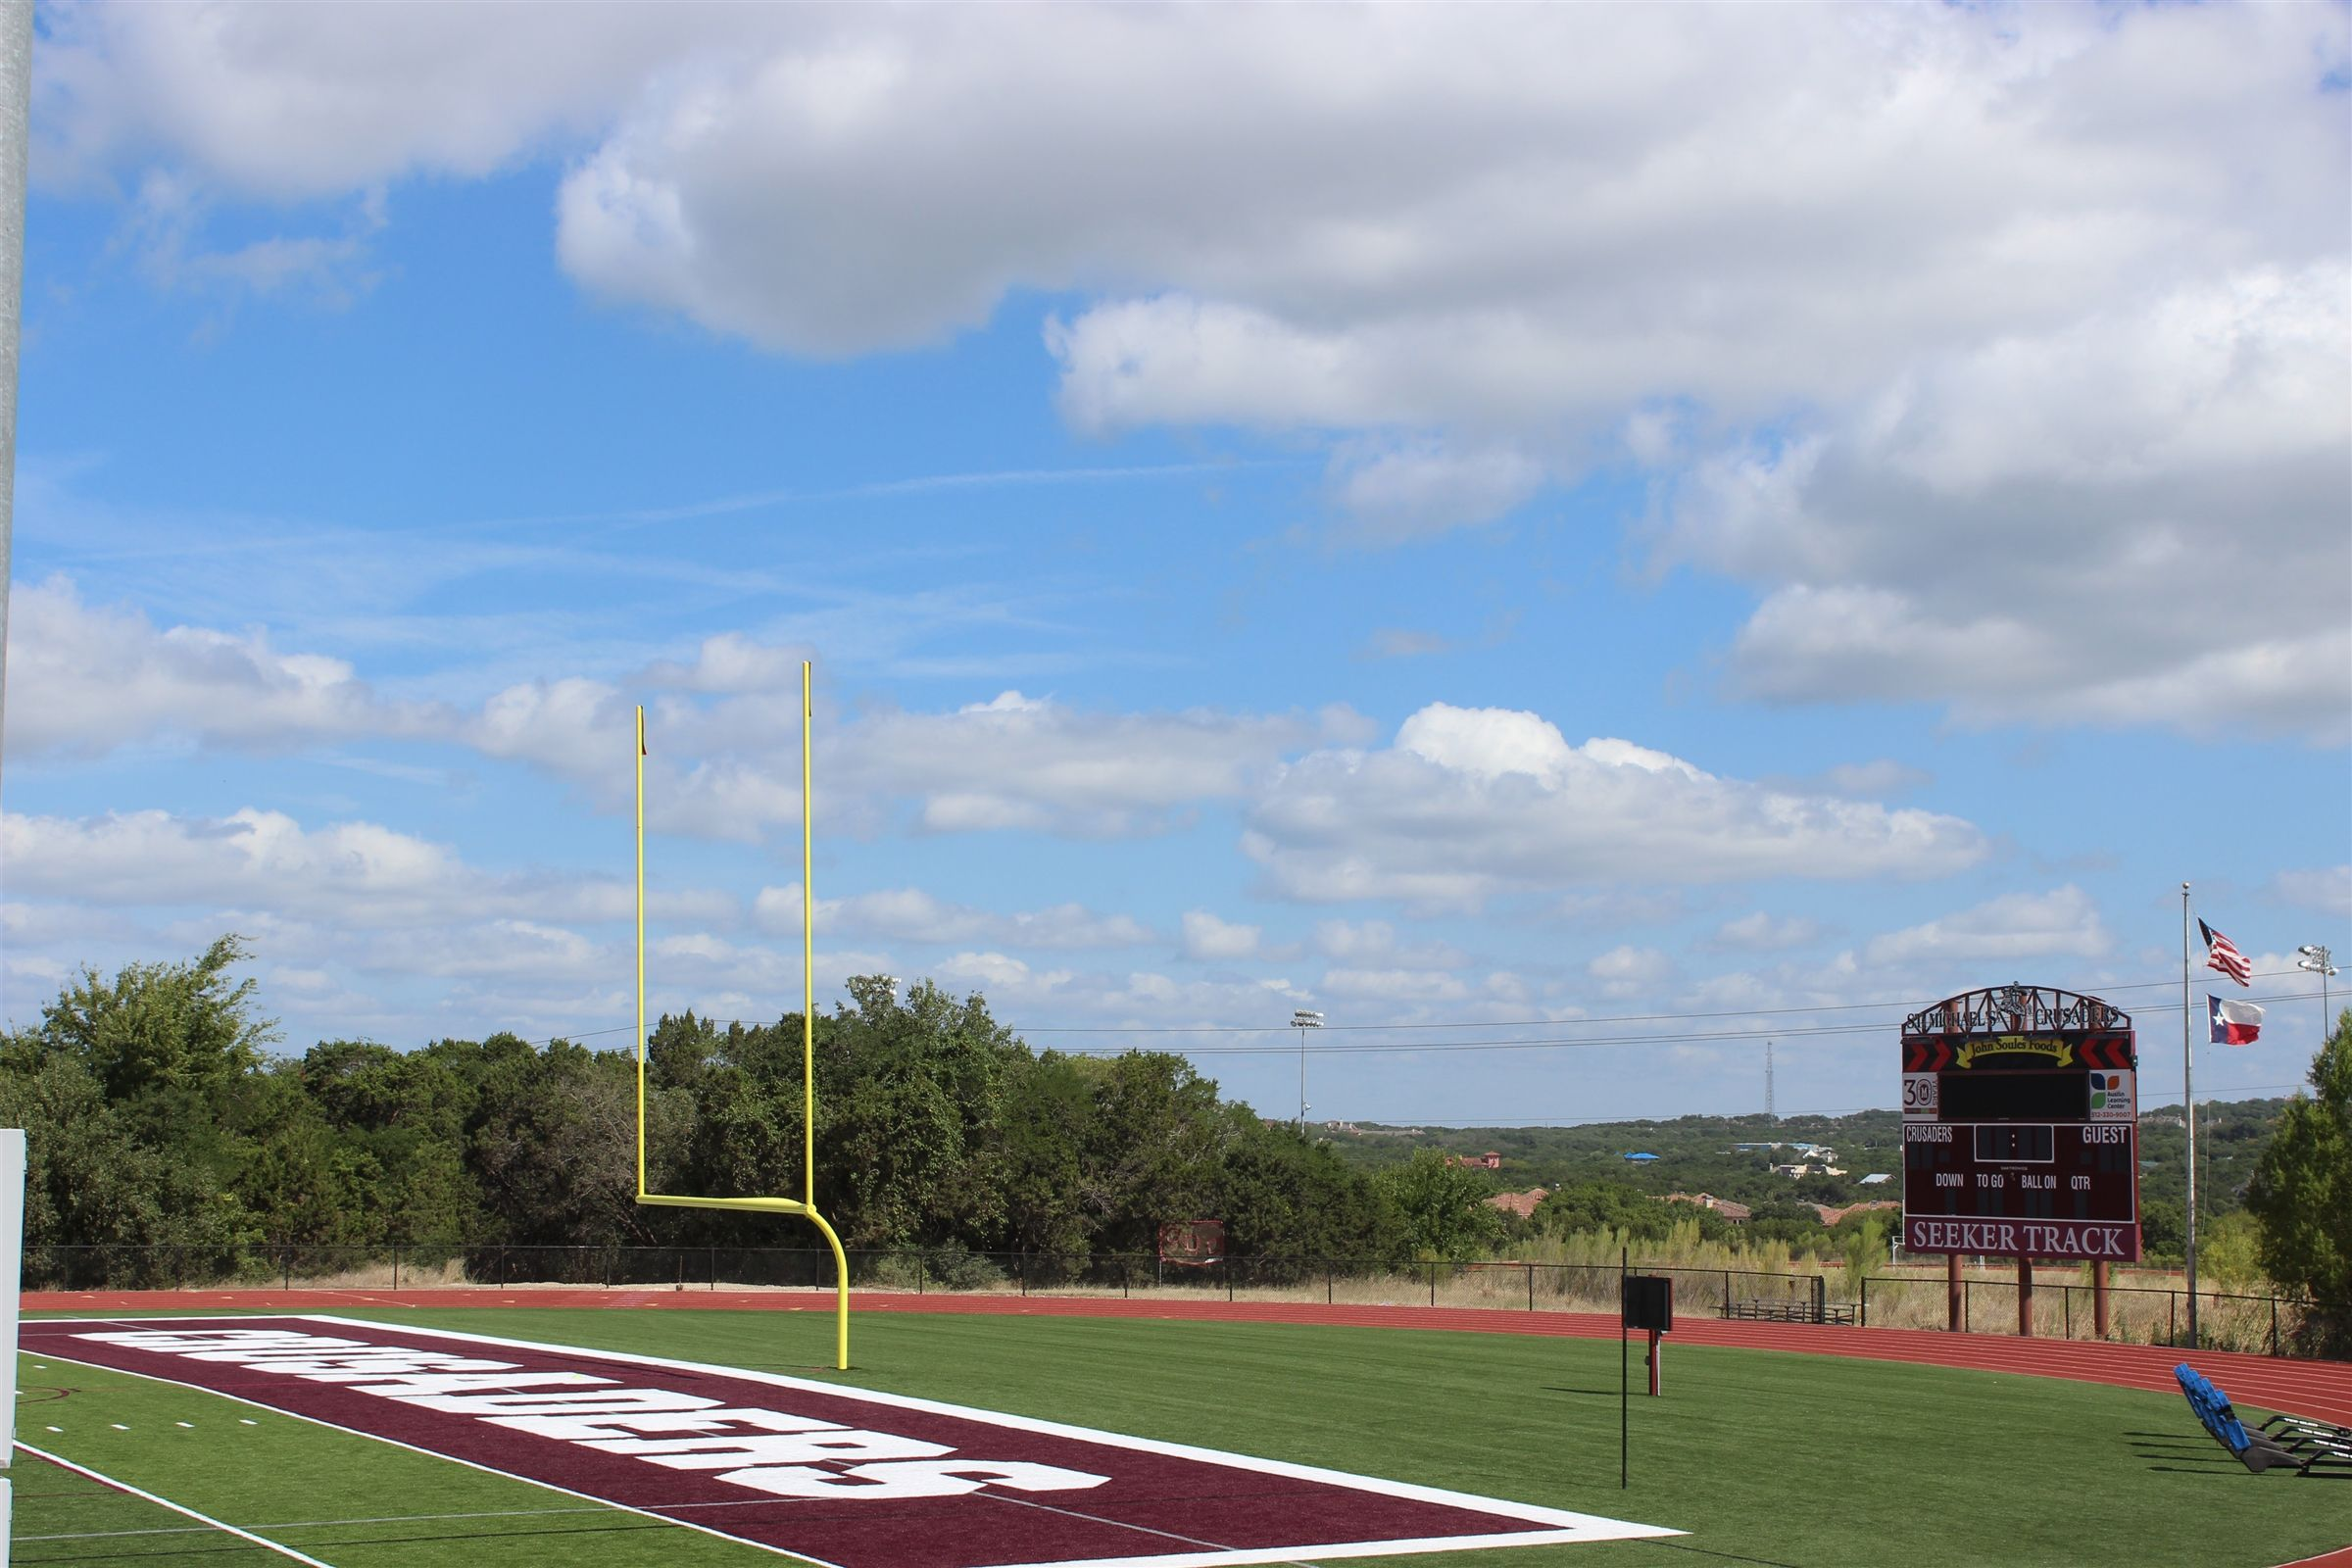 McMeans Football Field & Seeker Track